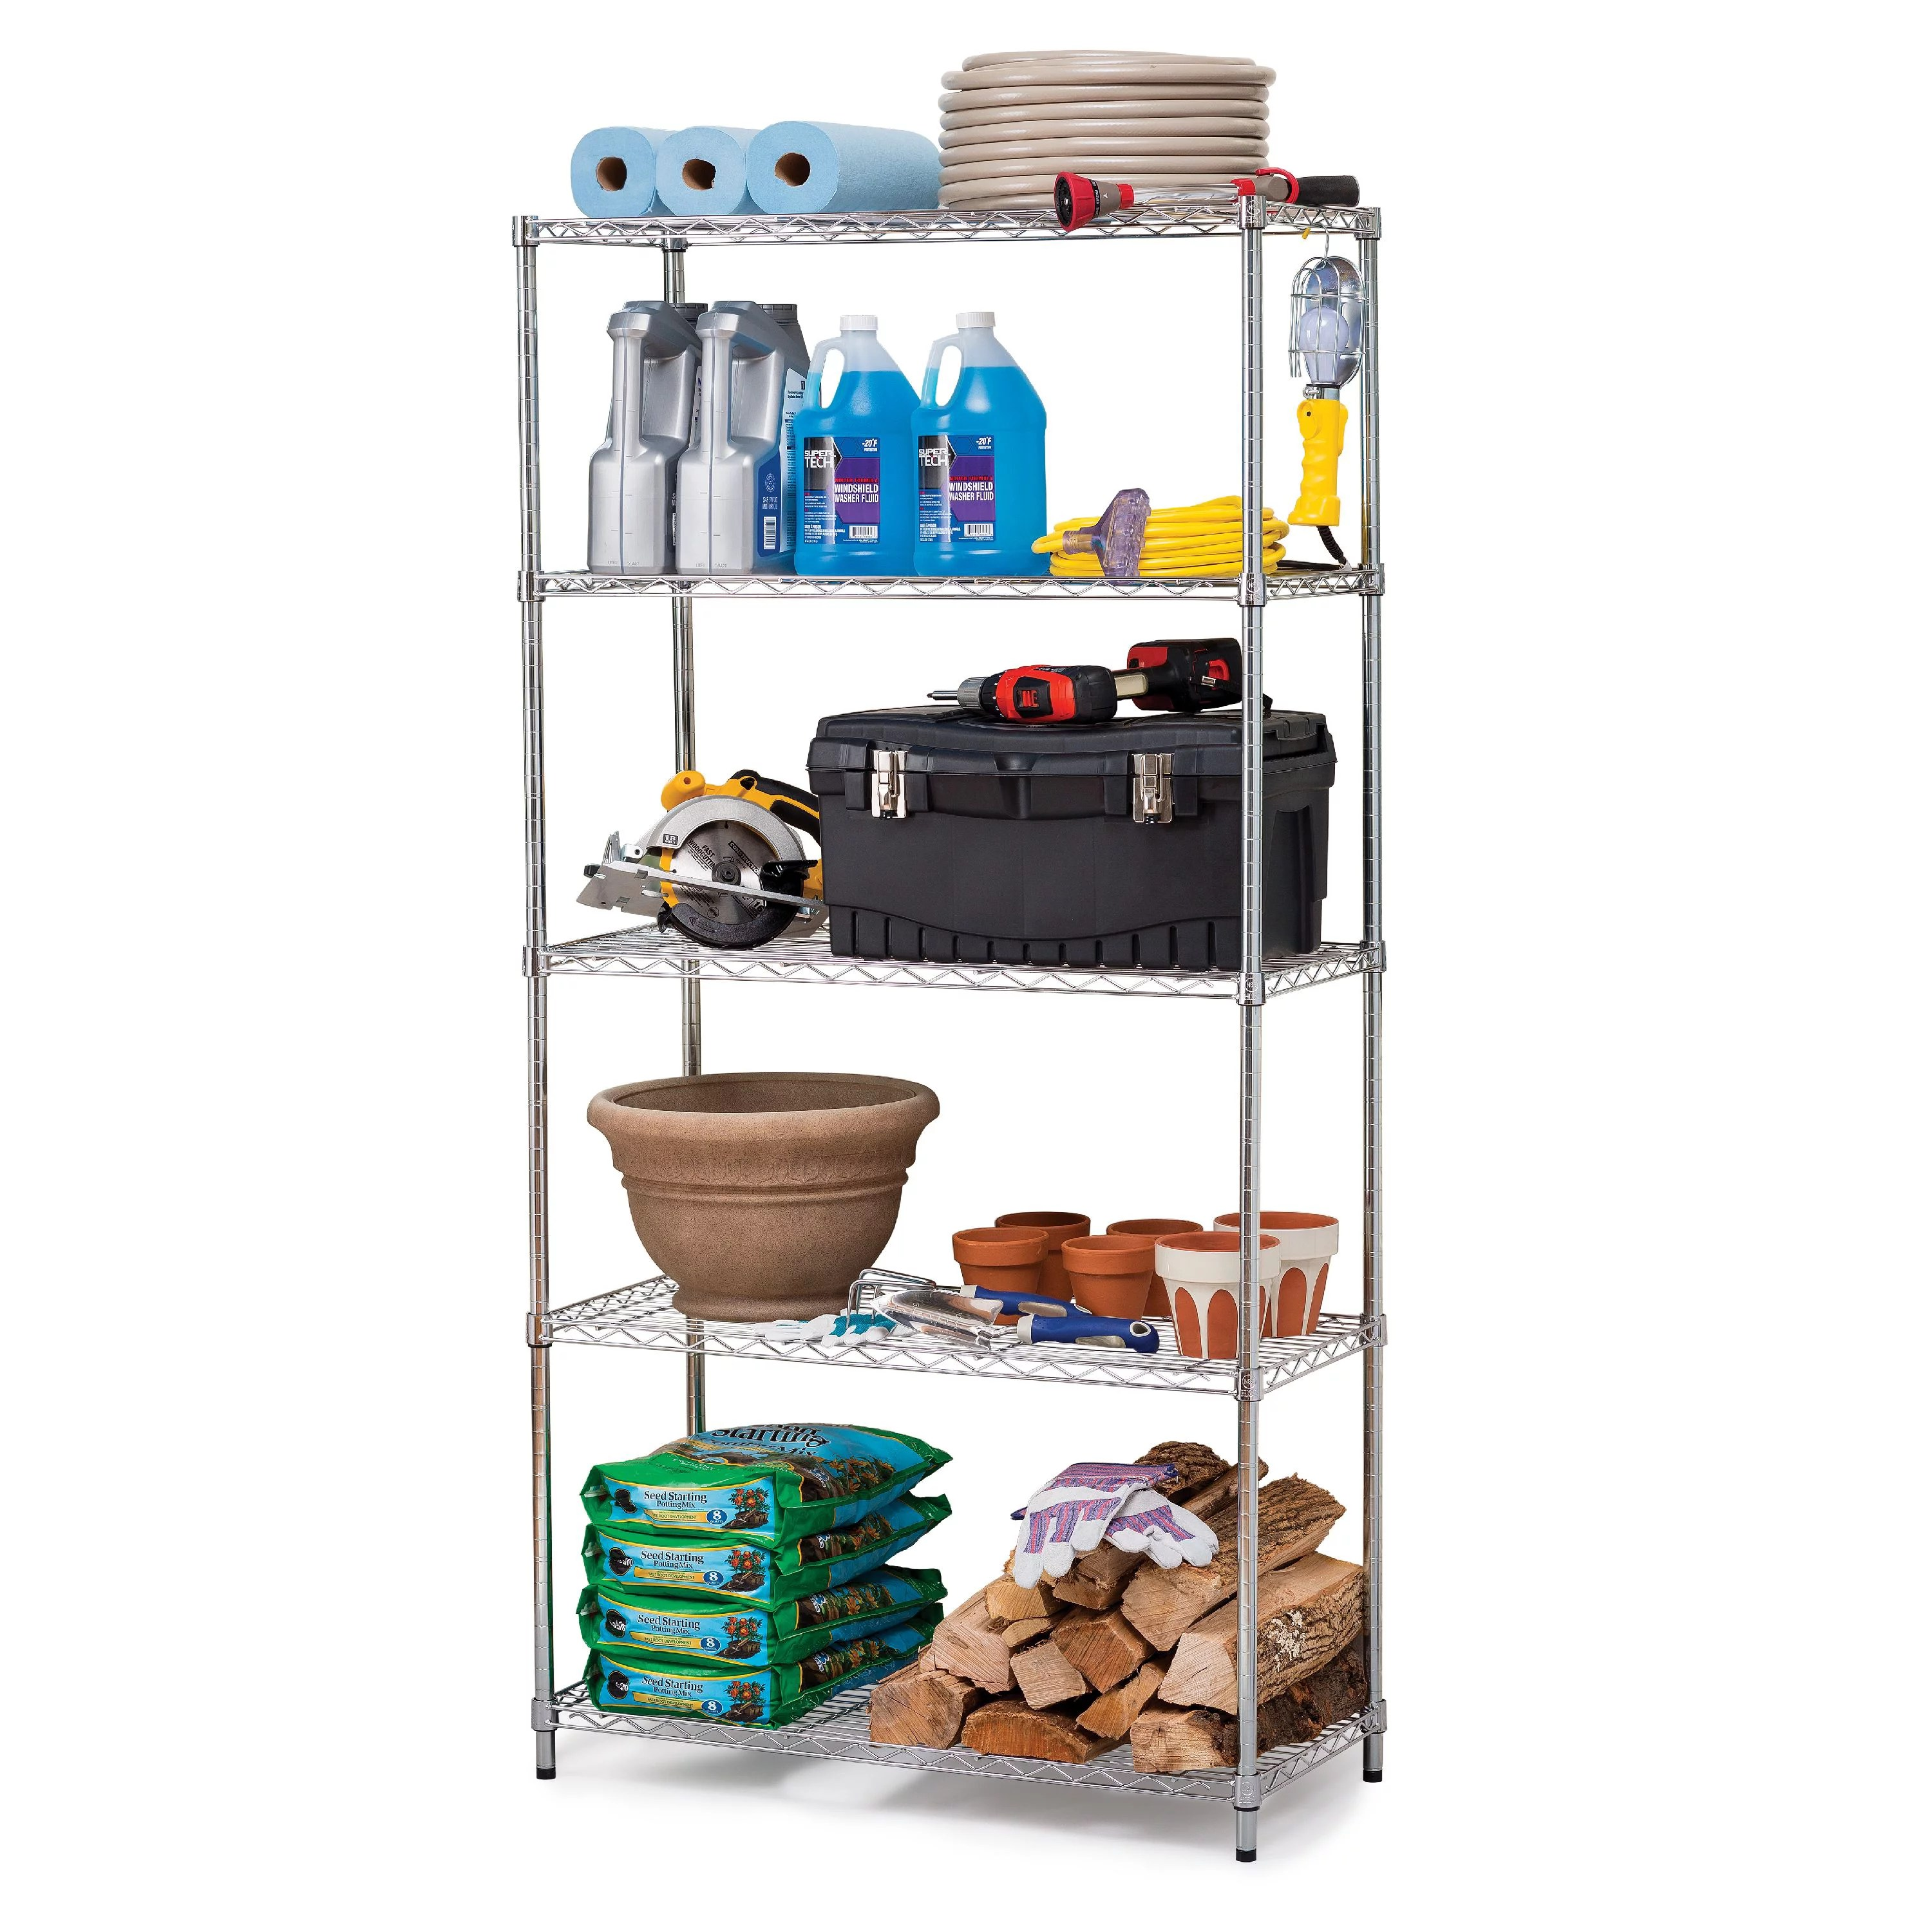 hss 16 dx36 wx72 h 5 tier wire shelving rack steel silver zinc weight capacity per shelf 250 lbs evenly distributed